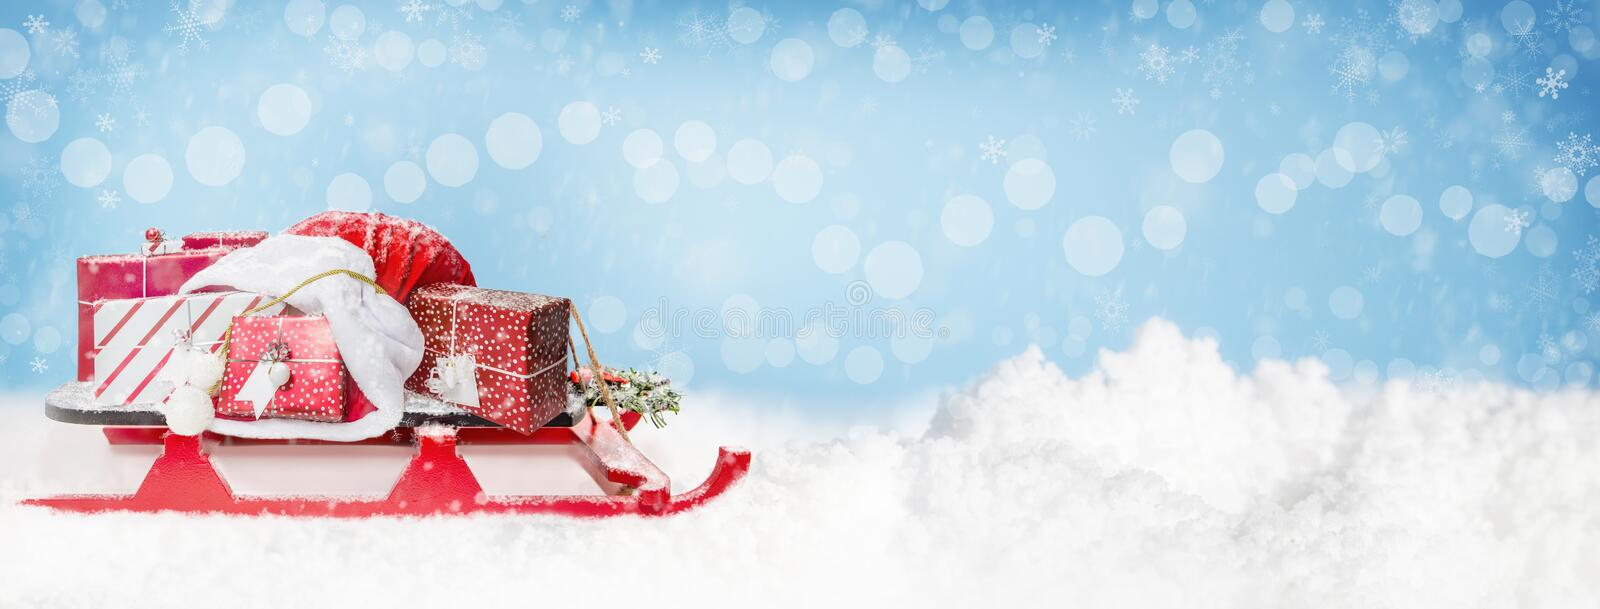 Christmas Santa Sleigh and Gifts Web Banner royalty free stock photos